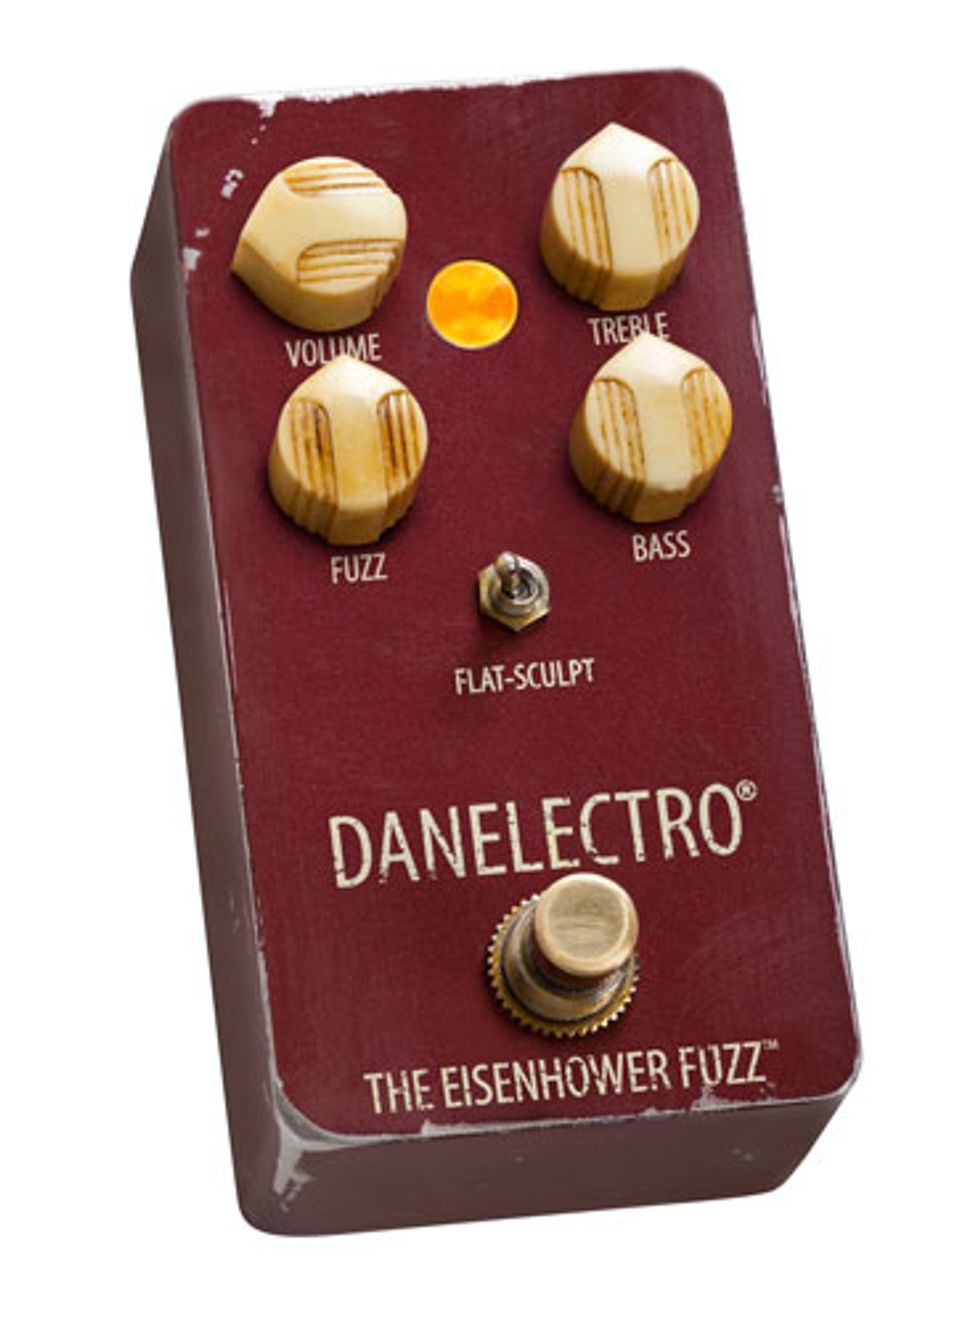 Danelectro Announces the Eisenhower Fuzz and the Breakdown